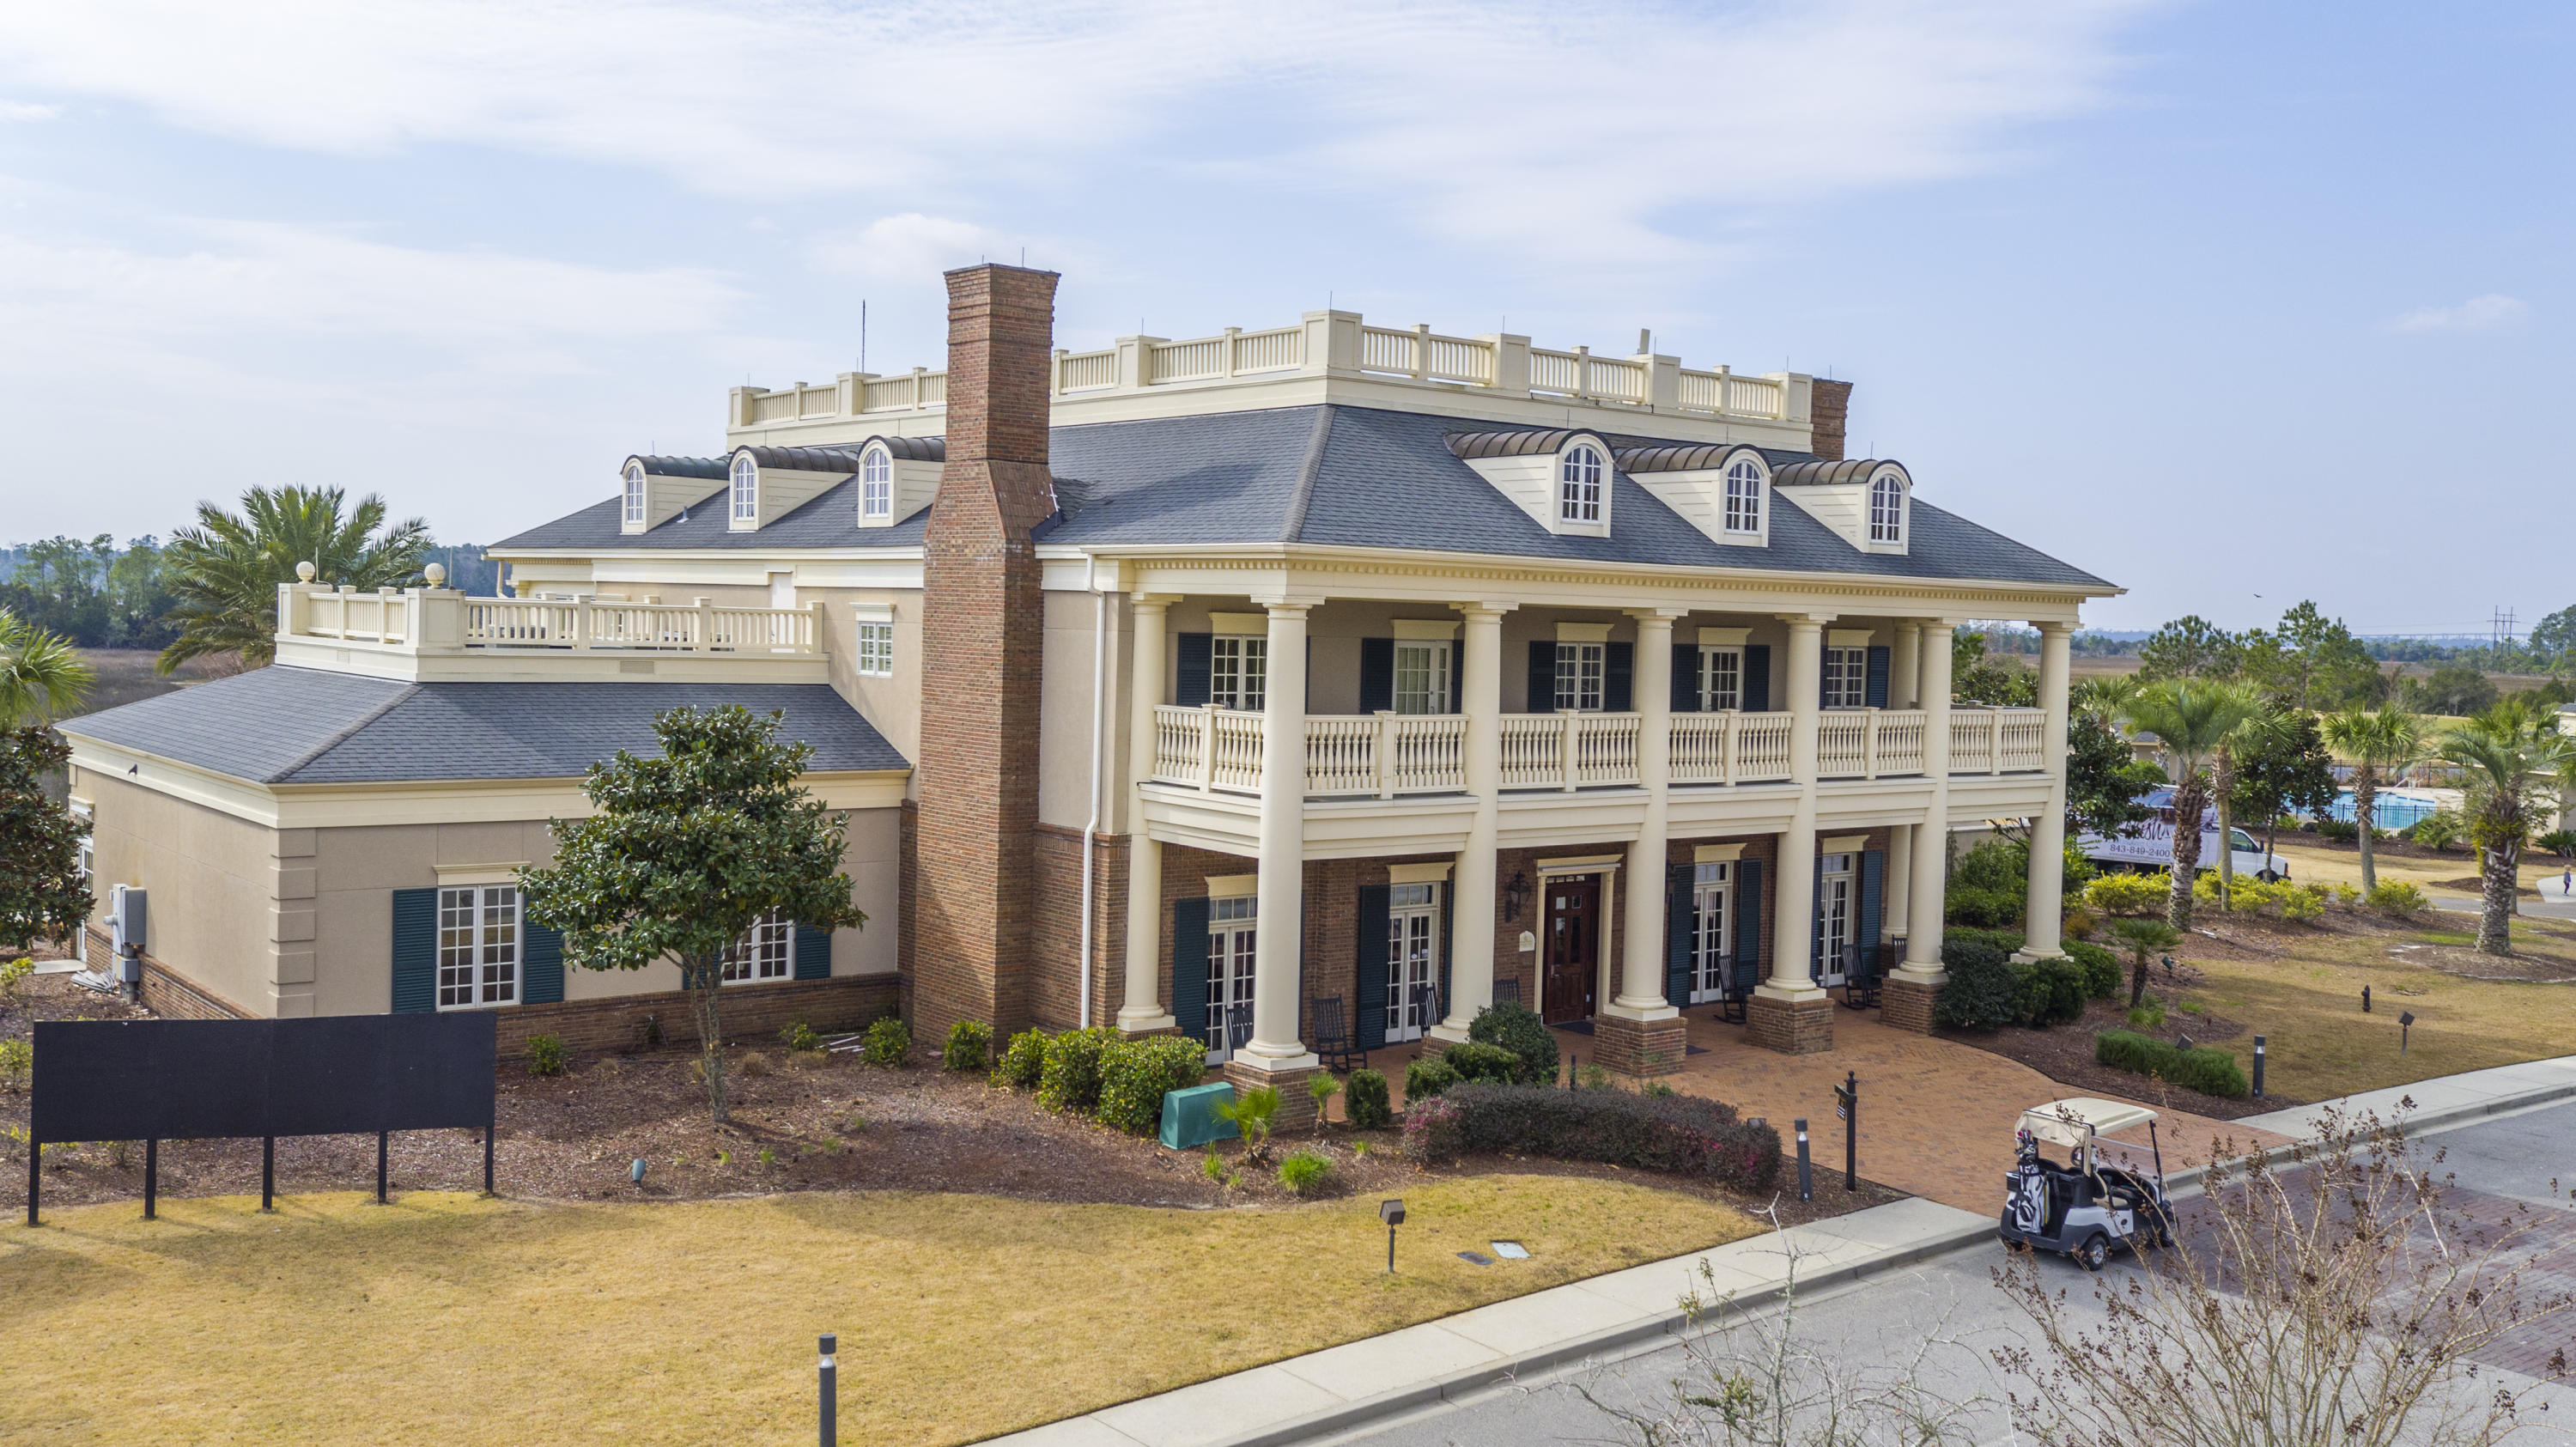 Rivertowne Country Club Homes For Sale - 1542 Sea Pines, Mount Pleasant, SC - 16